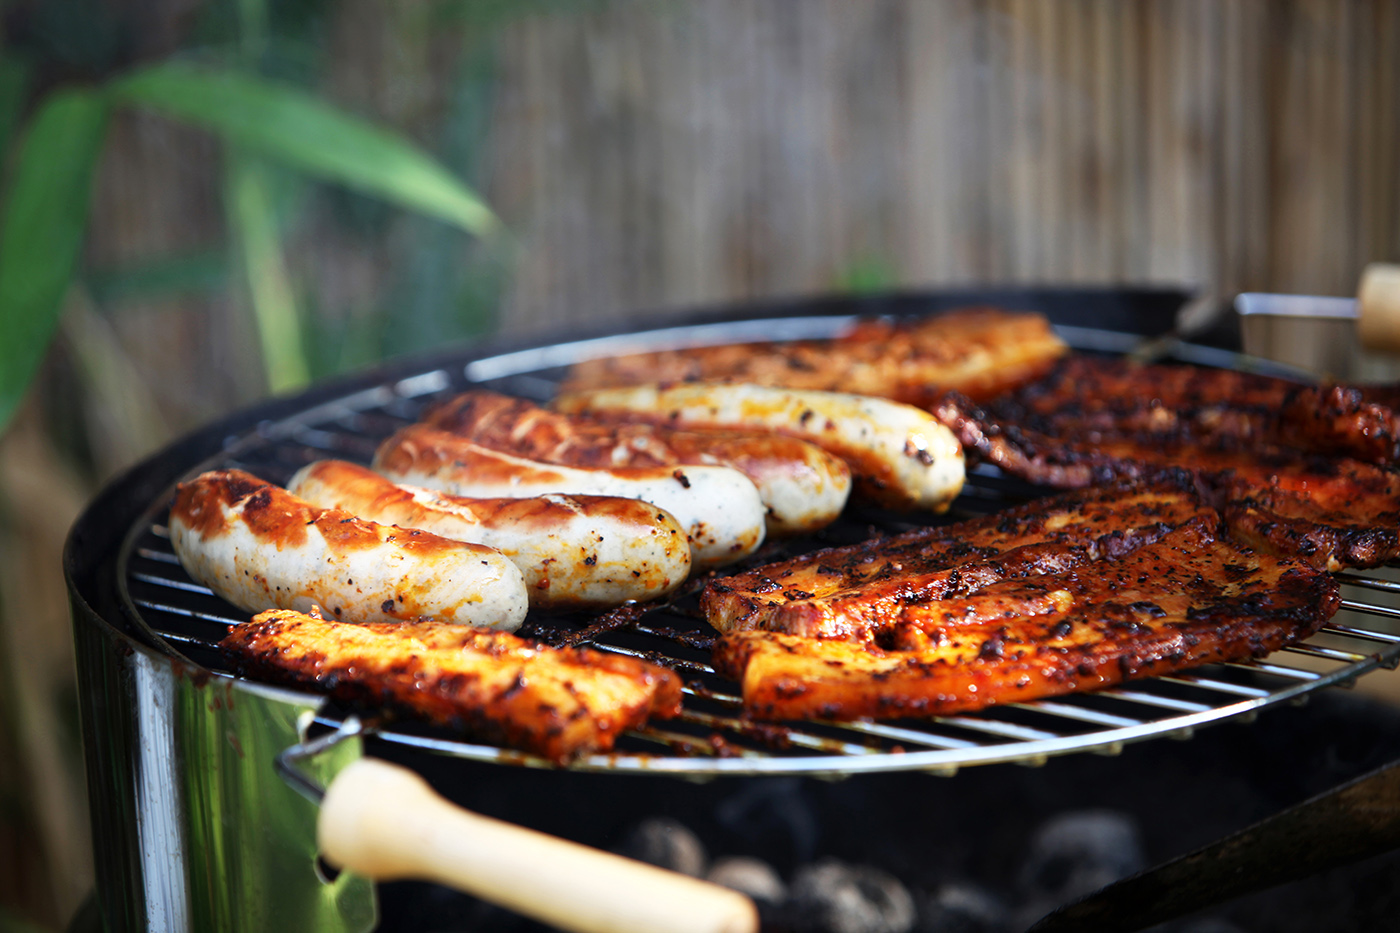 Grill delicious food 50164